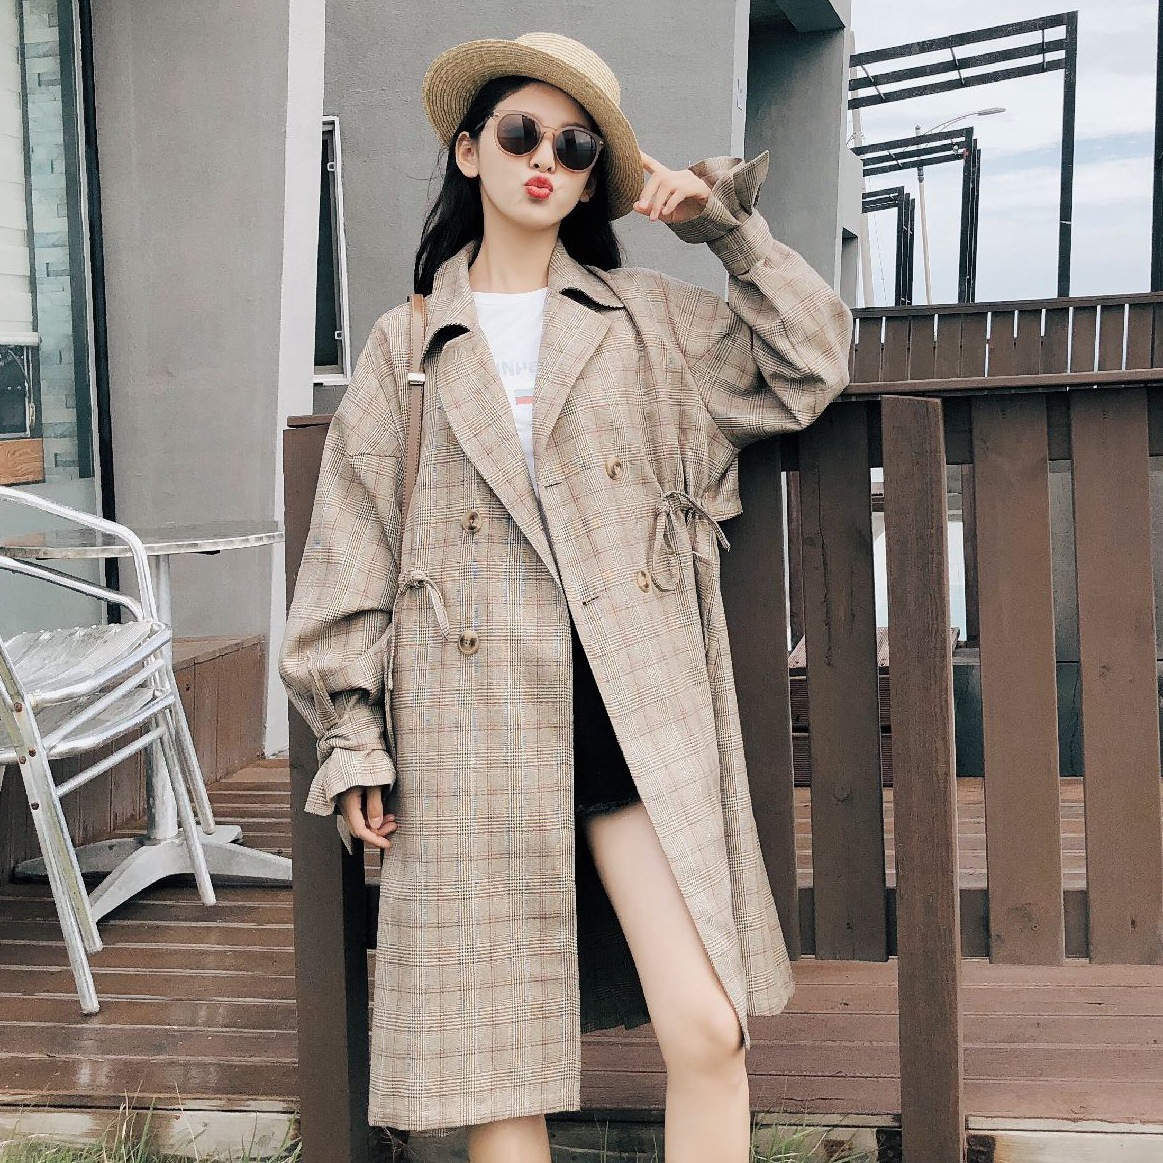 2018 Autumn Outerwear Light Coffee Cloak Type Windbreaker Woman Chic Drawstring Waistband   Trench   Coat Loose Sleeve Plaid Coat